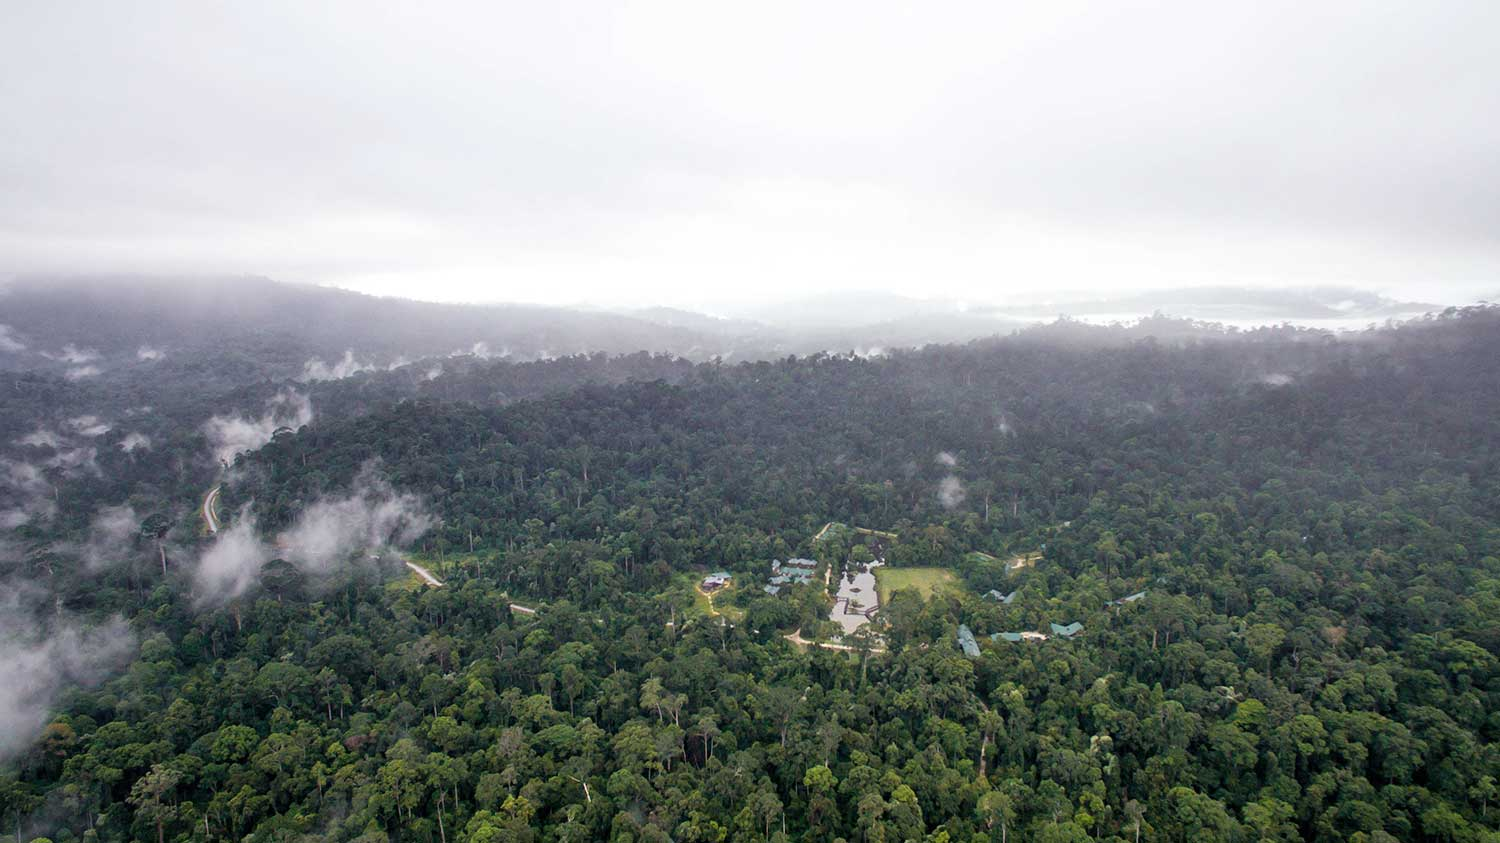 Maliau Basin Study Center Aerial Shot